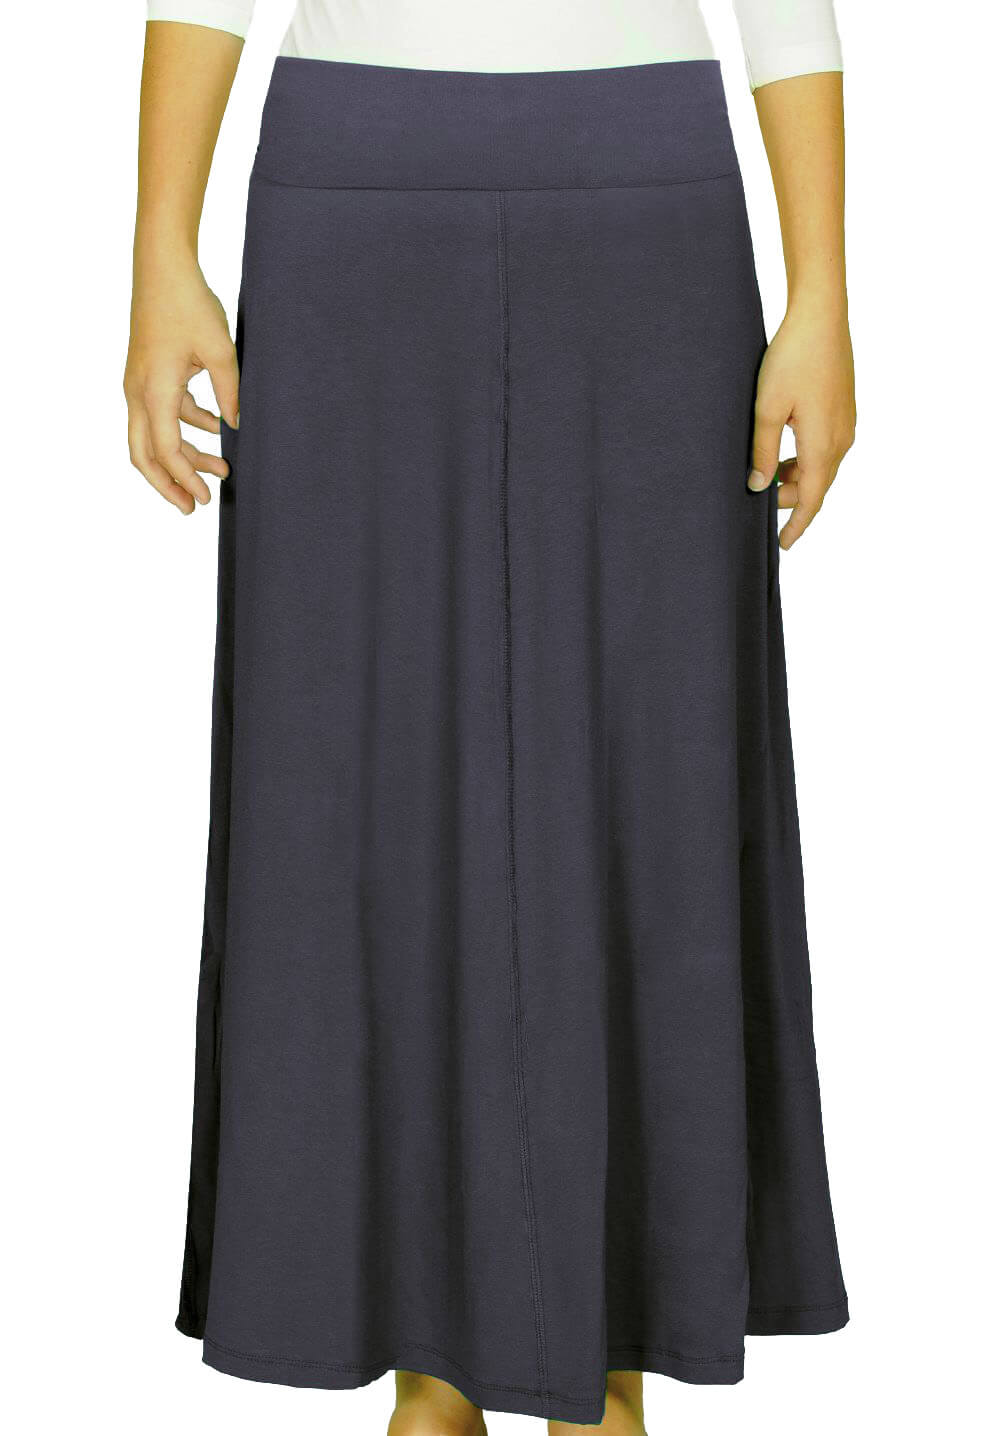 39ee9f9f8 Modest Skirts for Women - Long and Knee Length Skirts